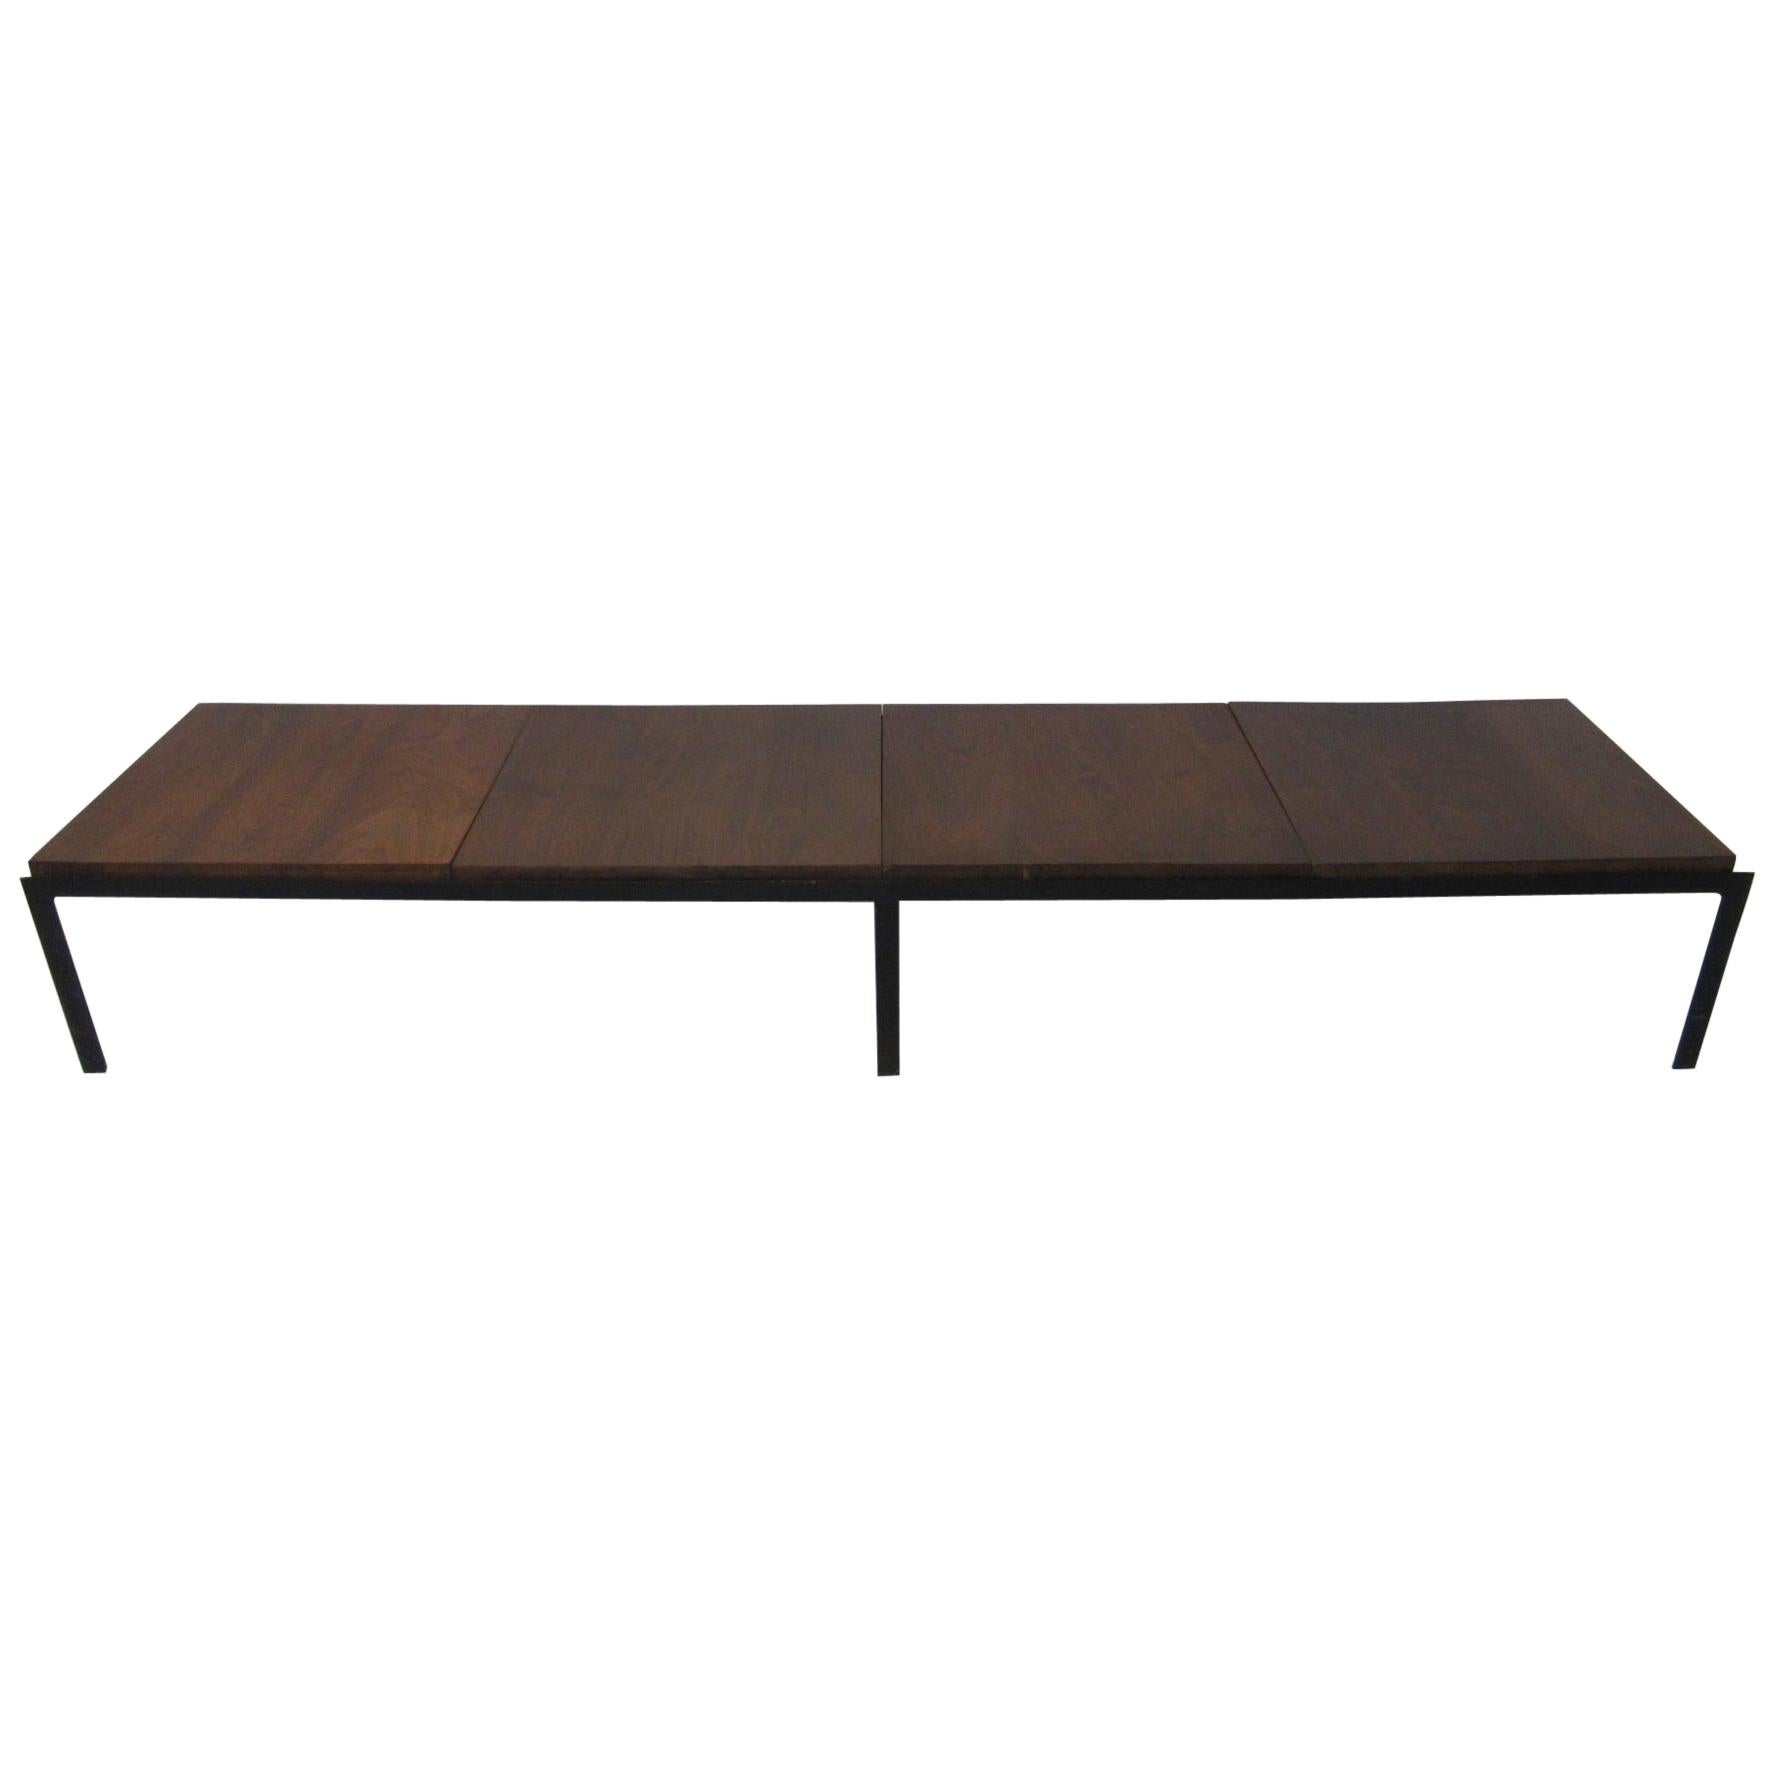 Knoll Coffee Table / Bench T Angled Framed in Walnut